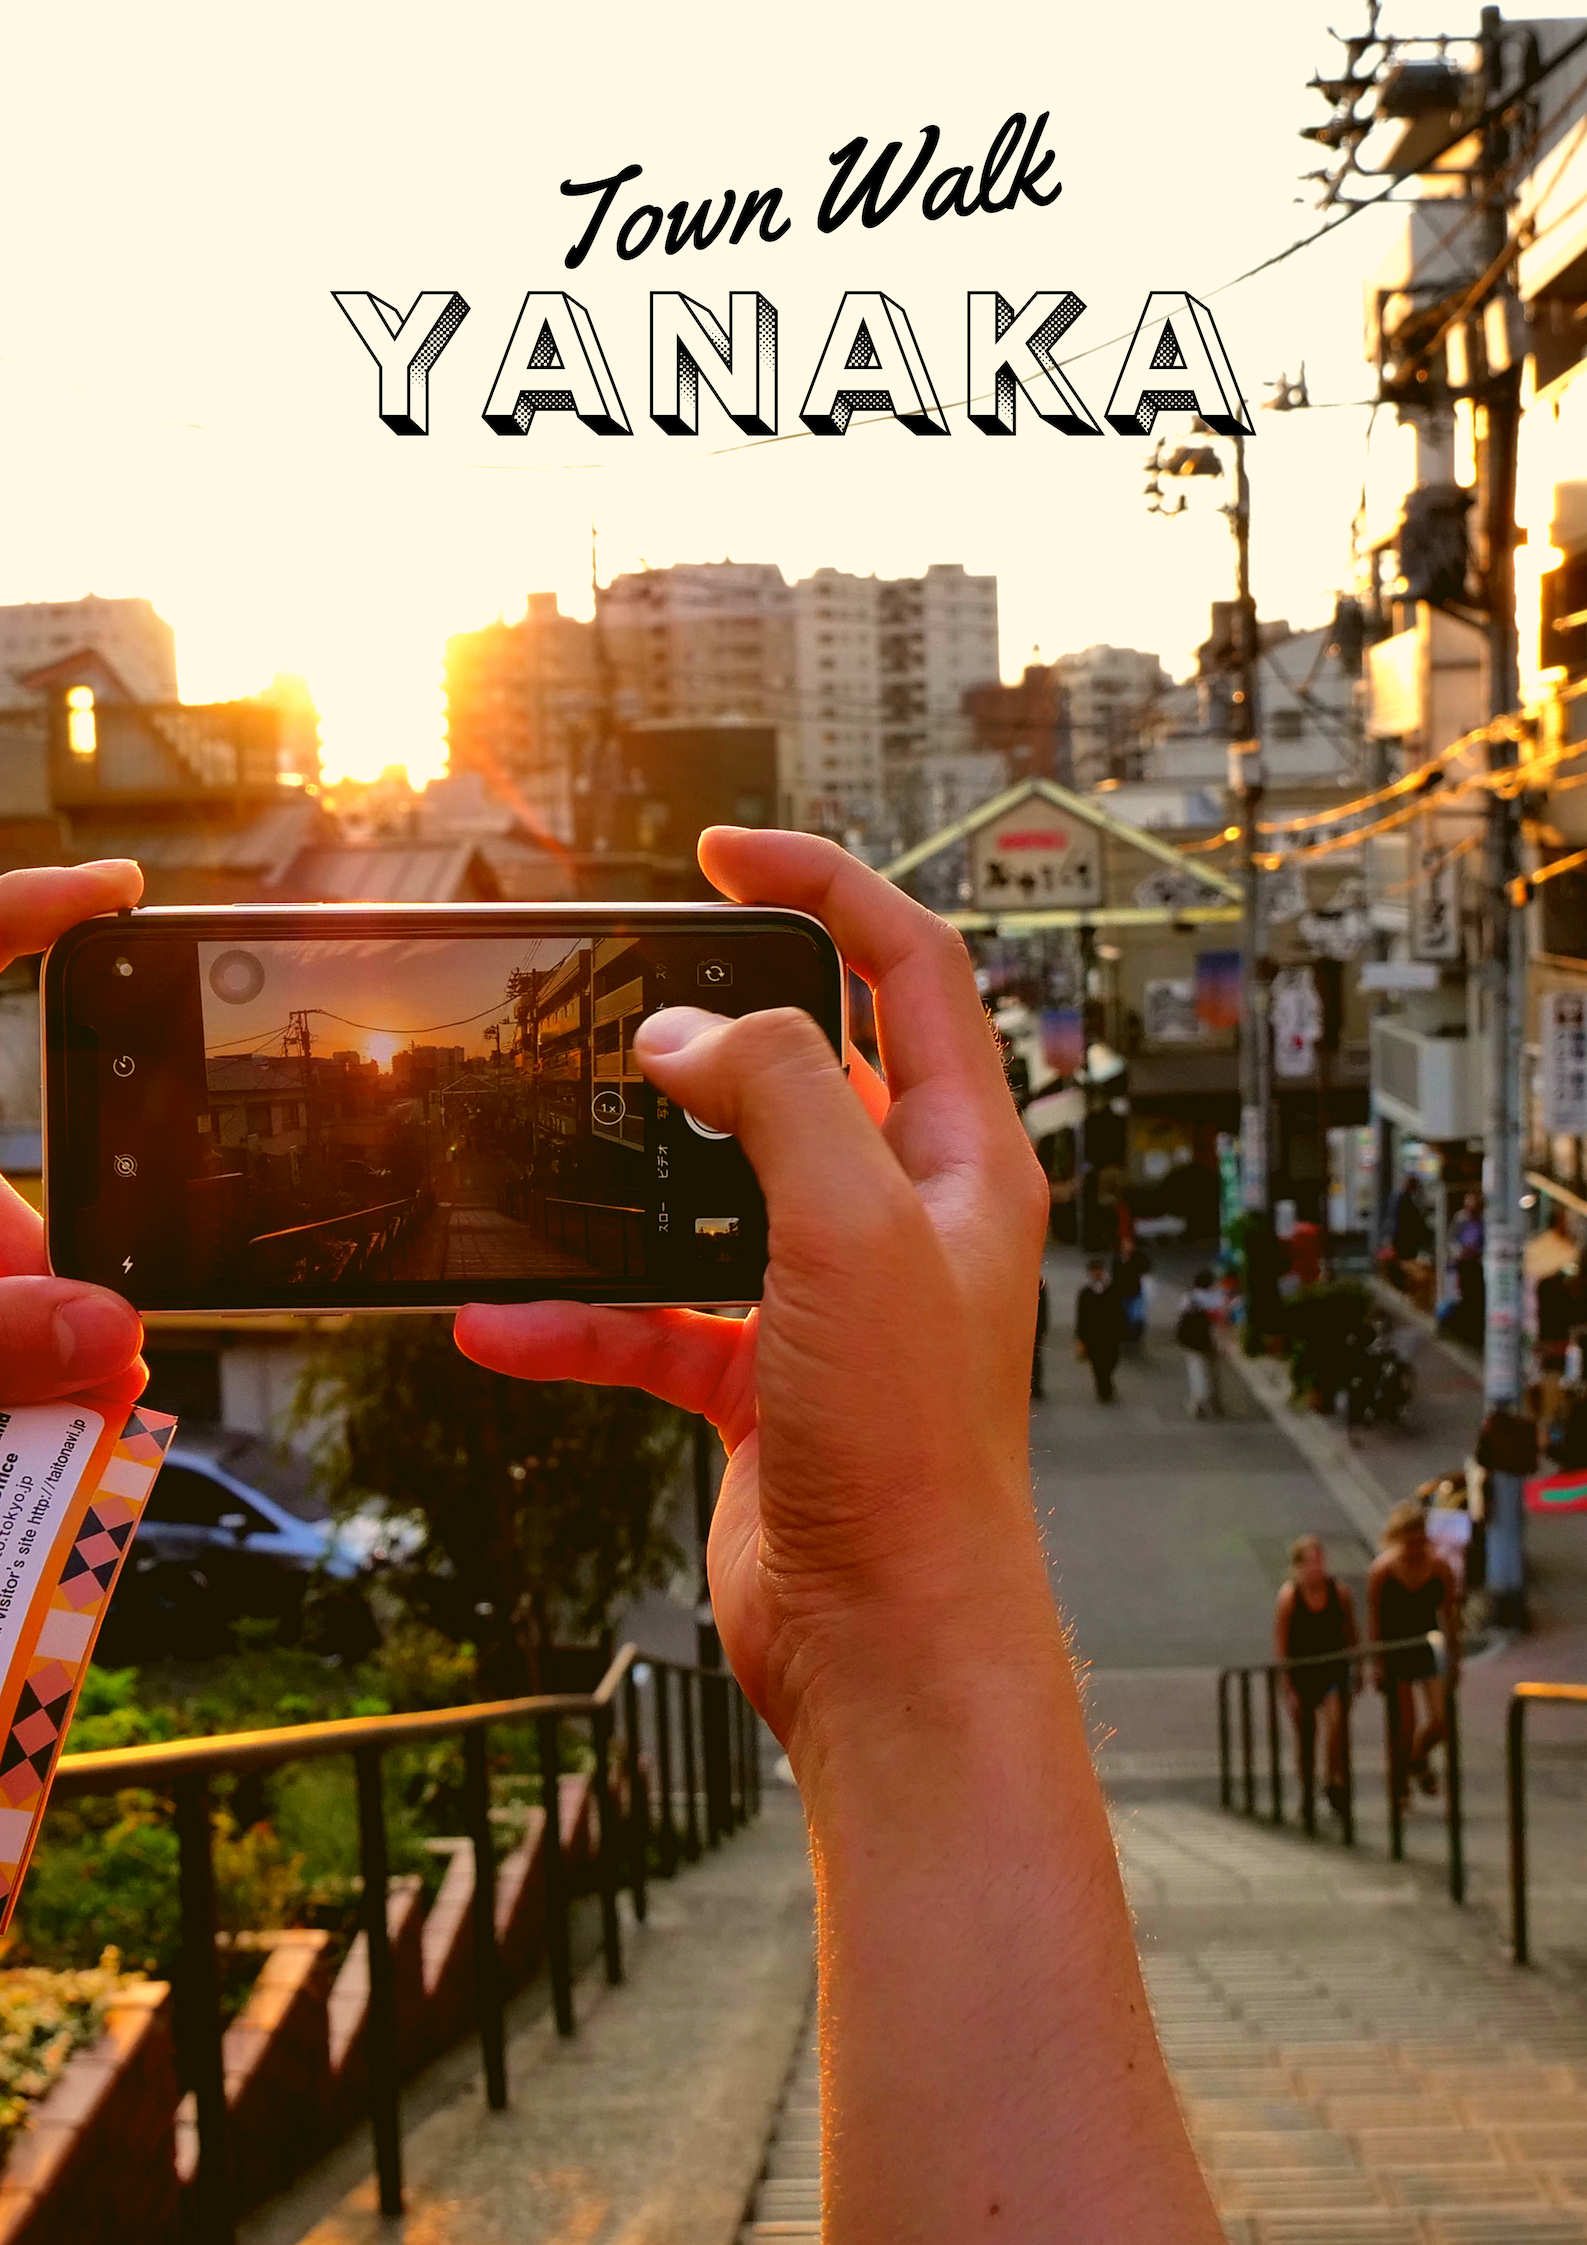 Yanaka Historical Walking Tour in Tokyo's Old Town